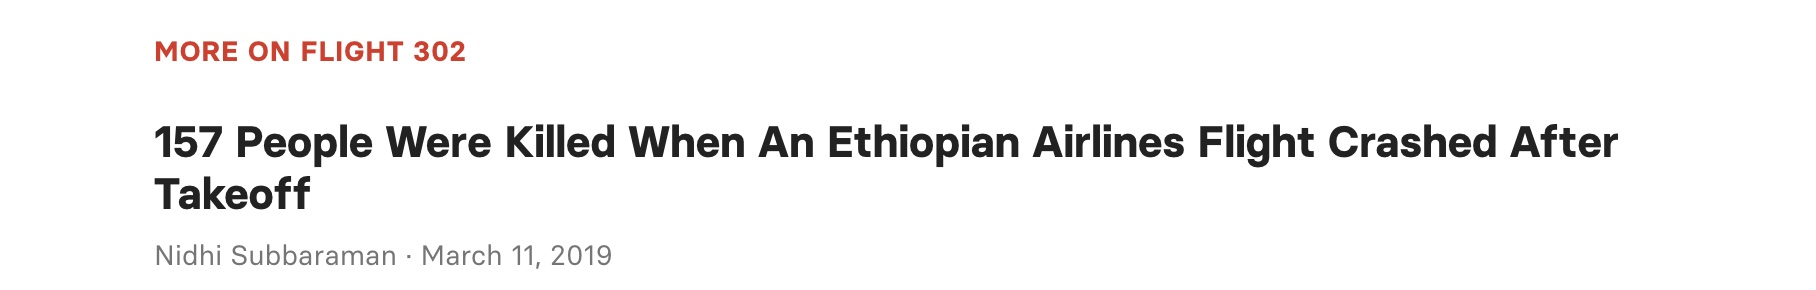 Screen shot of relevant news link in Ethiopian Airlines crash news.